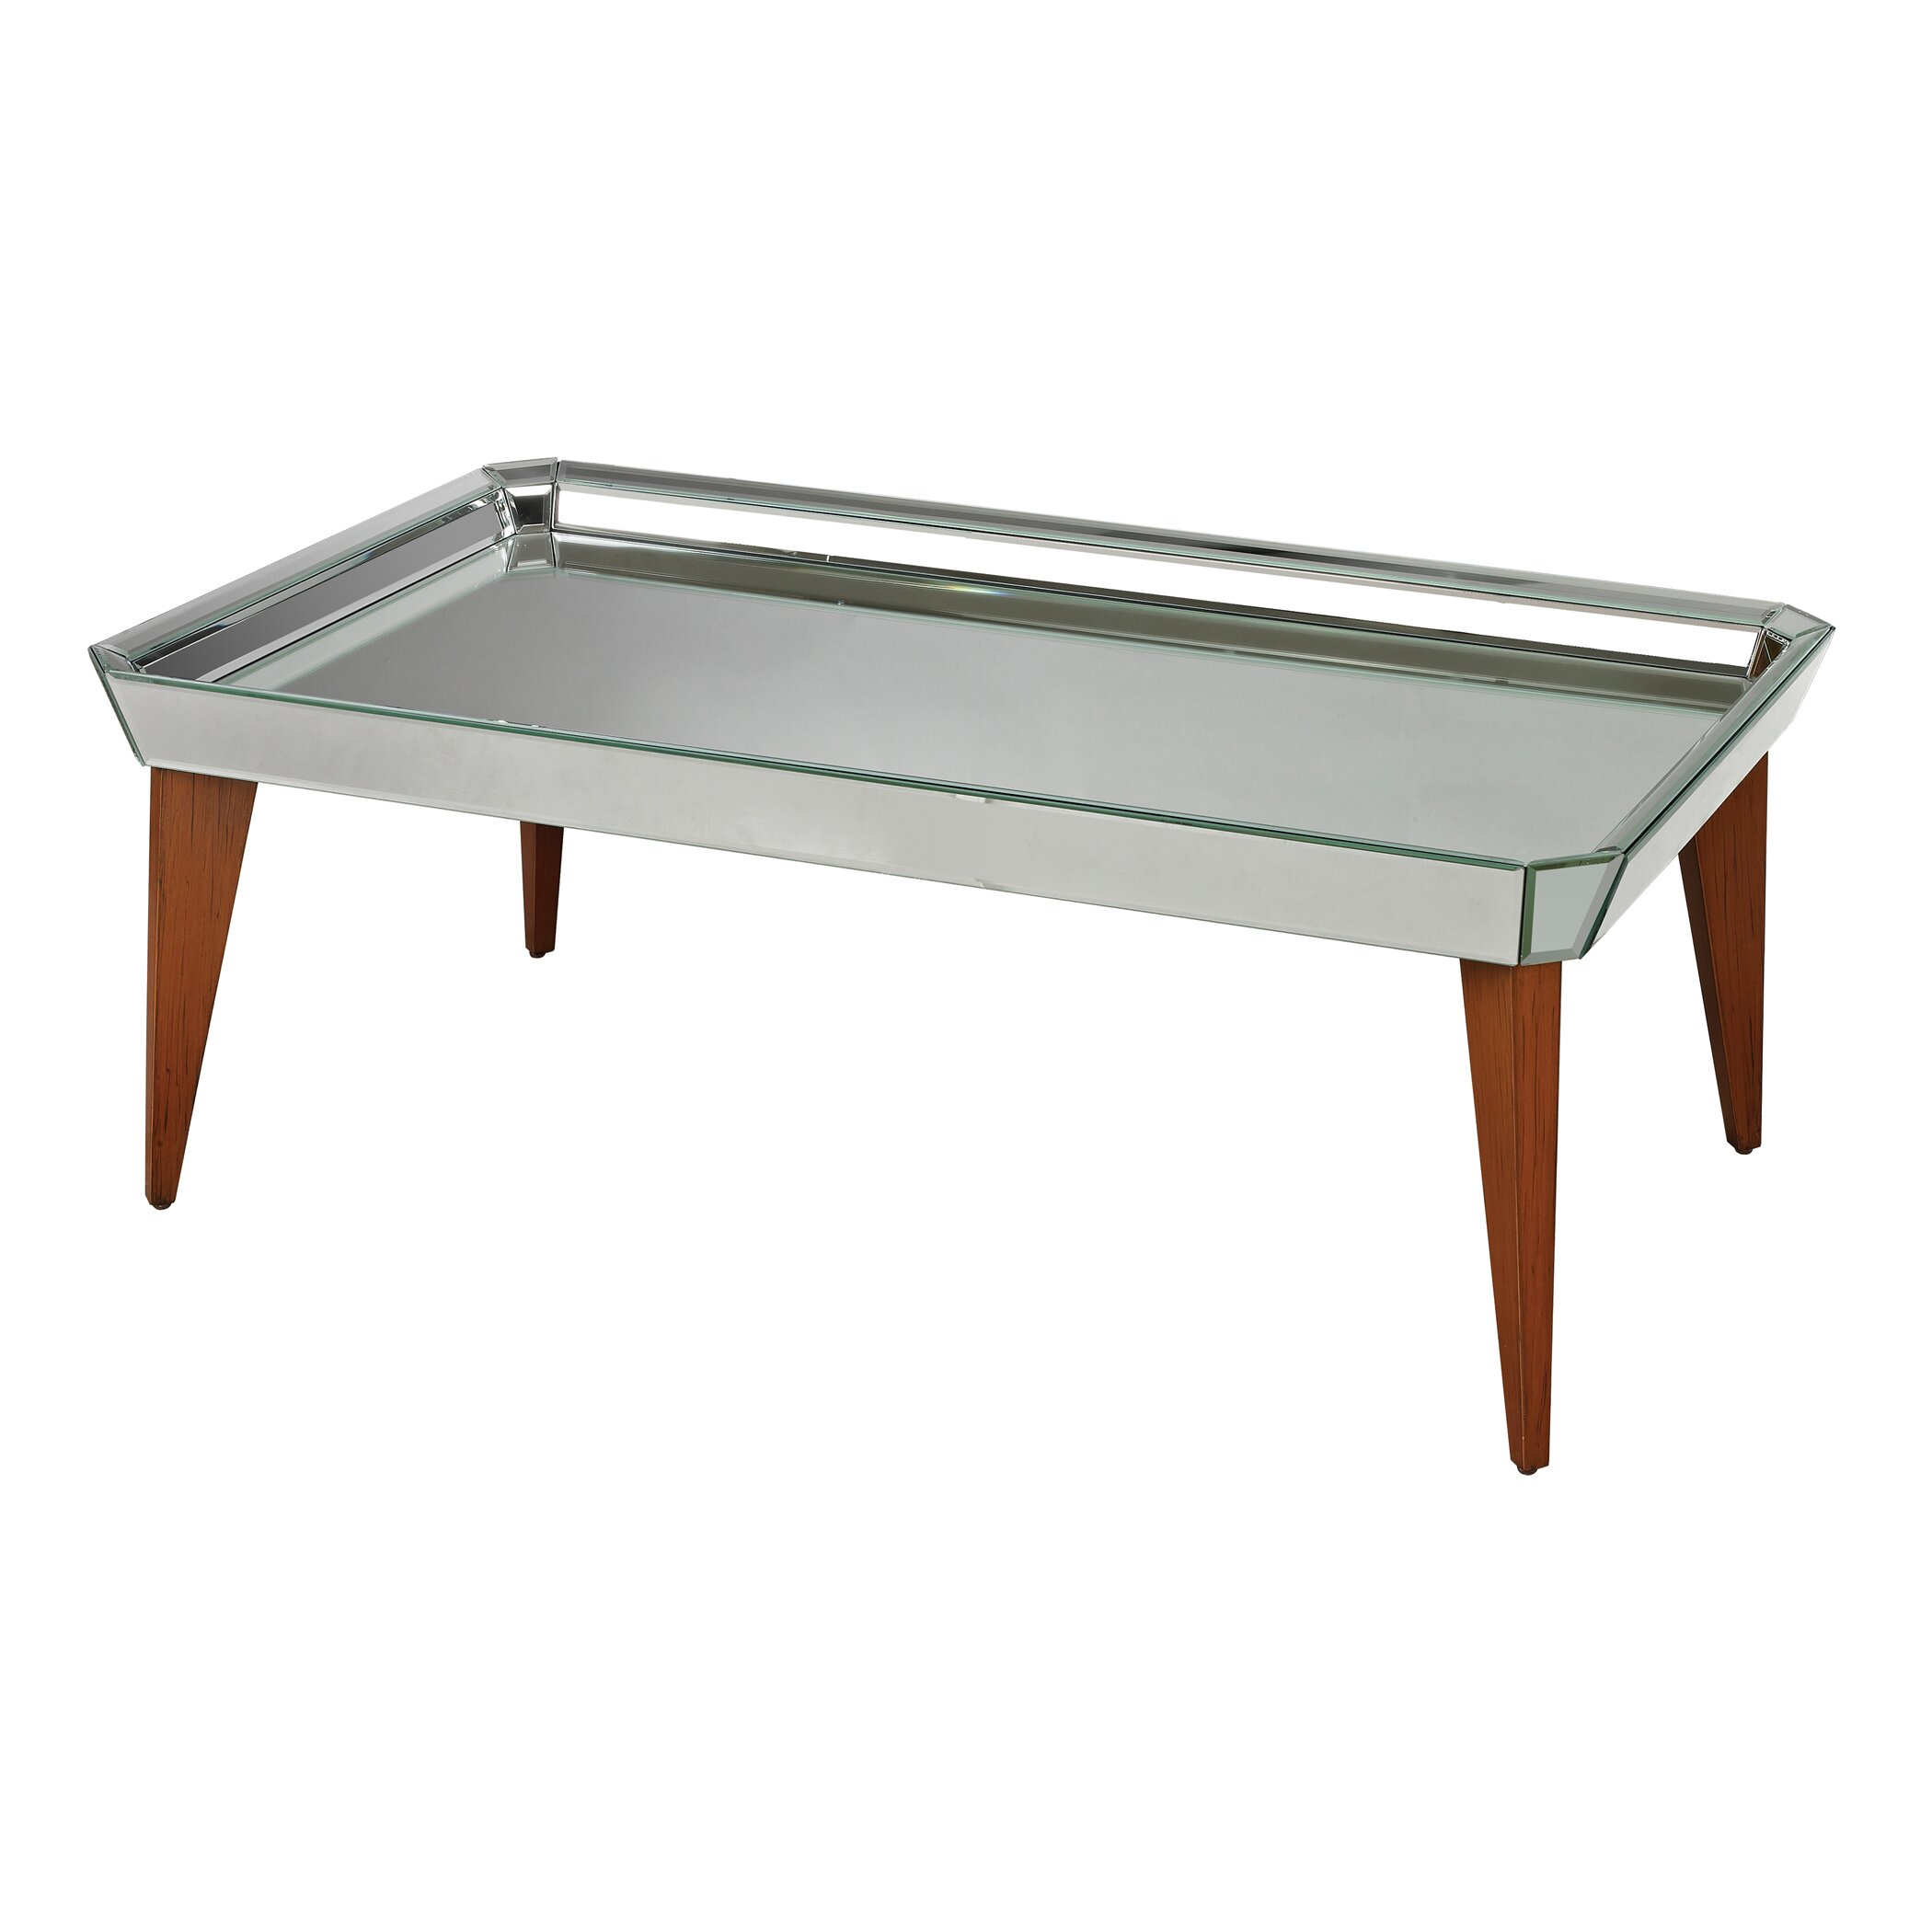 Rushbrook mid century mirrored coffee table wayfair for Wayfair mirrored coffee table